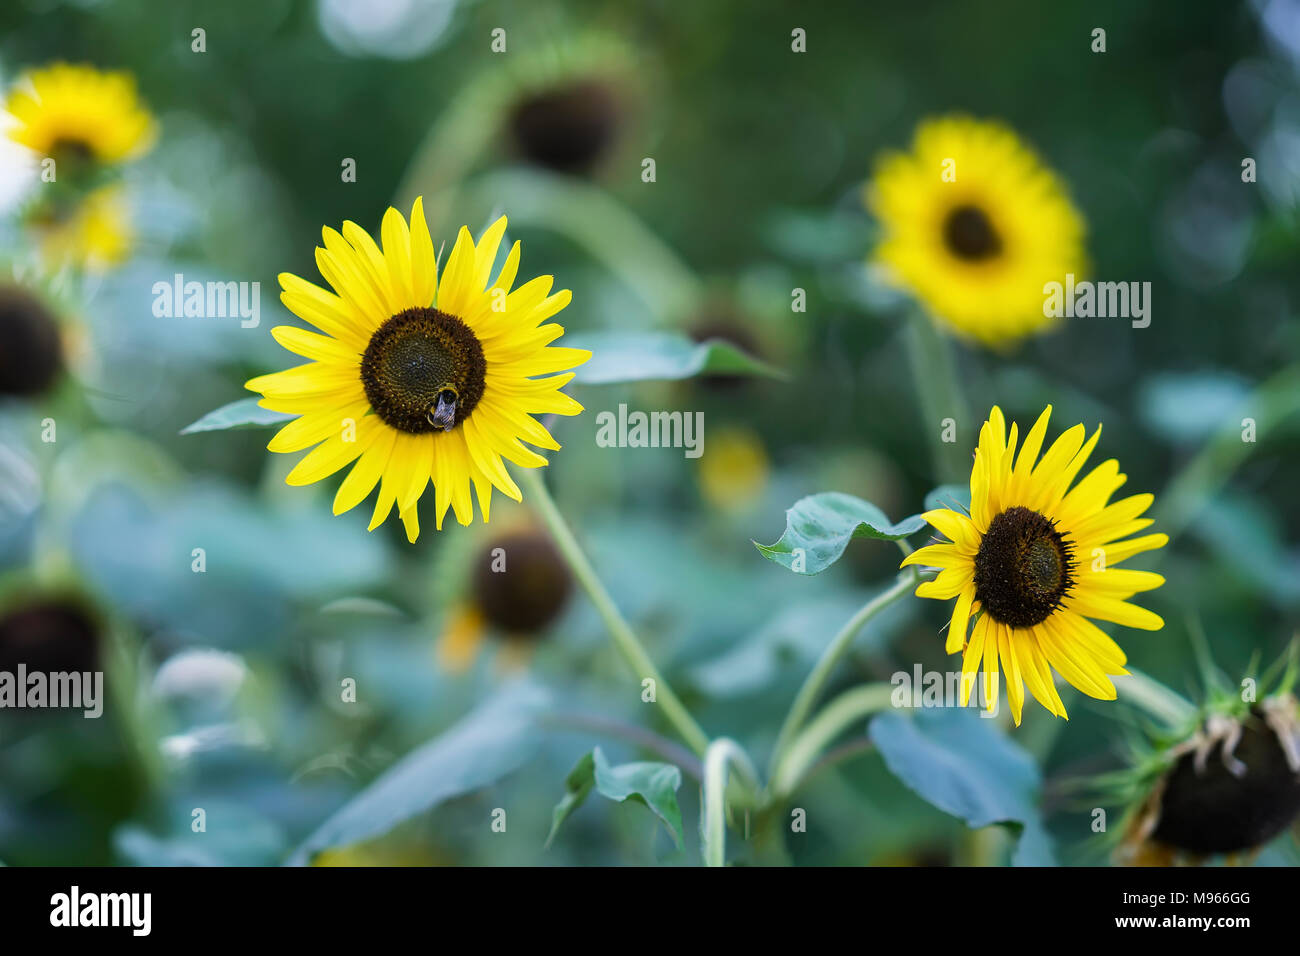 Bee collects nectar of sunflower in bright summer day - Stock Image